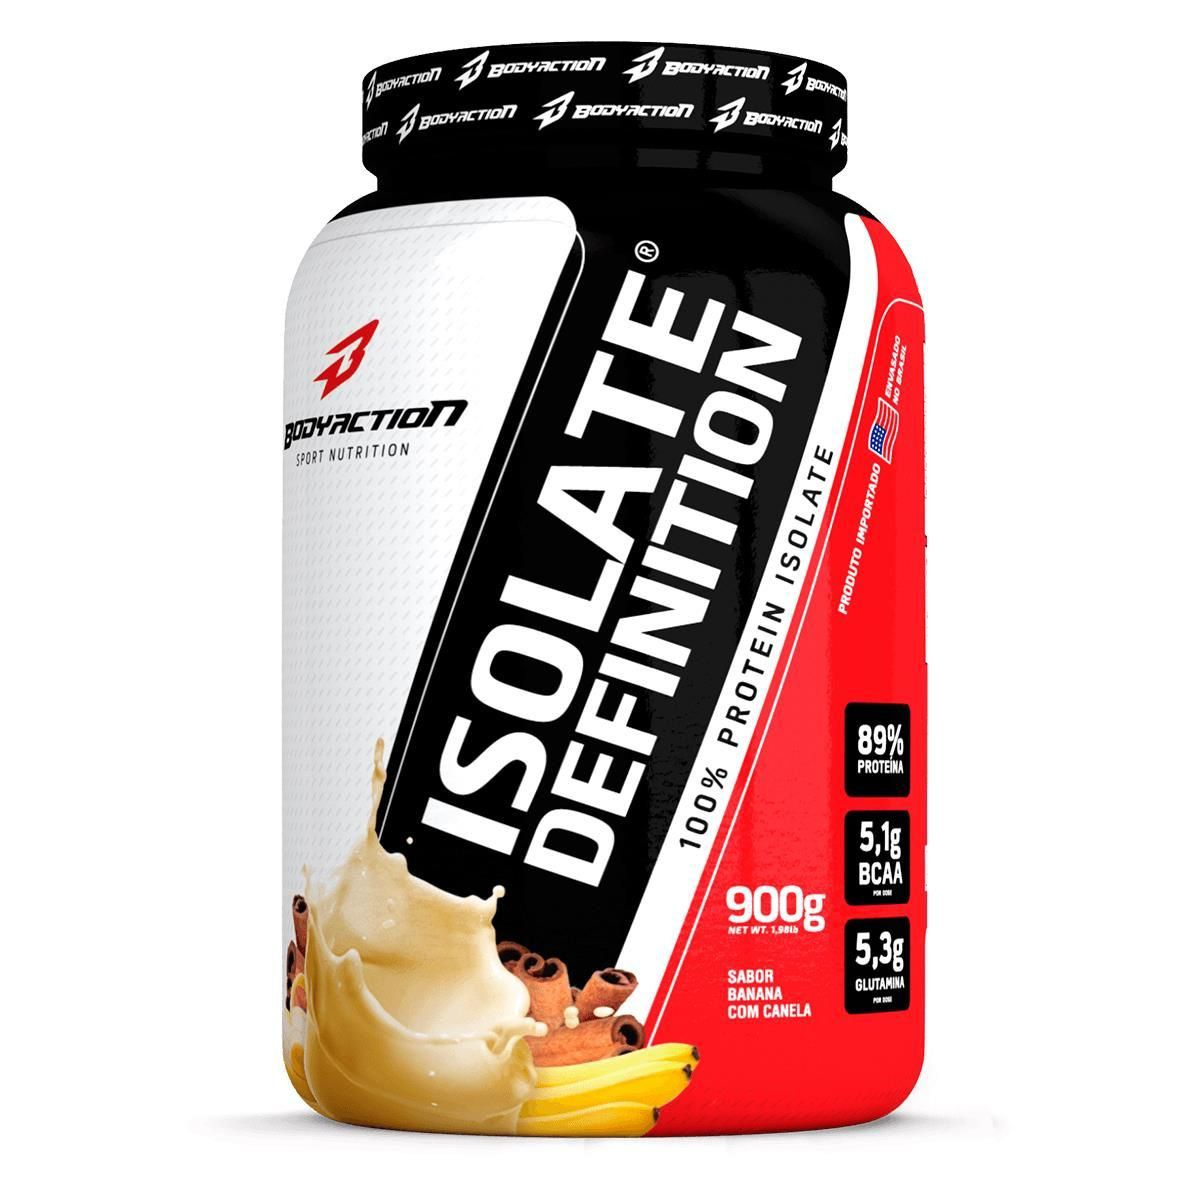 Whey Protein Isolate Definition 89% Proteína 900g BodyAction